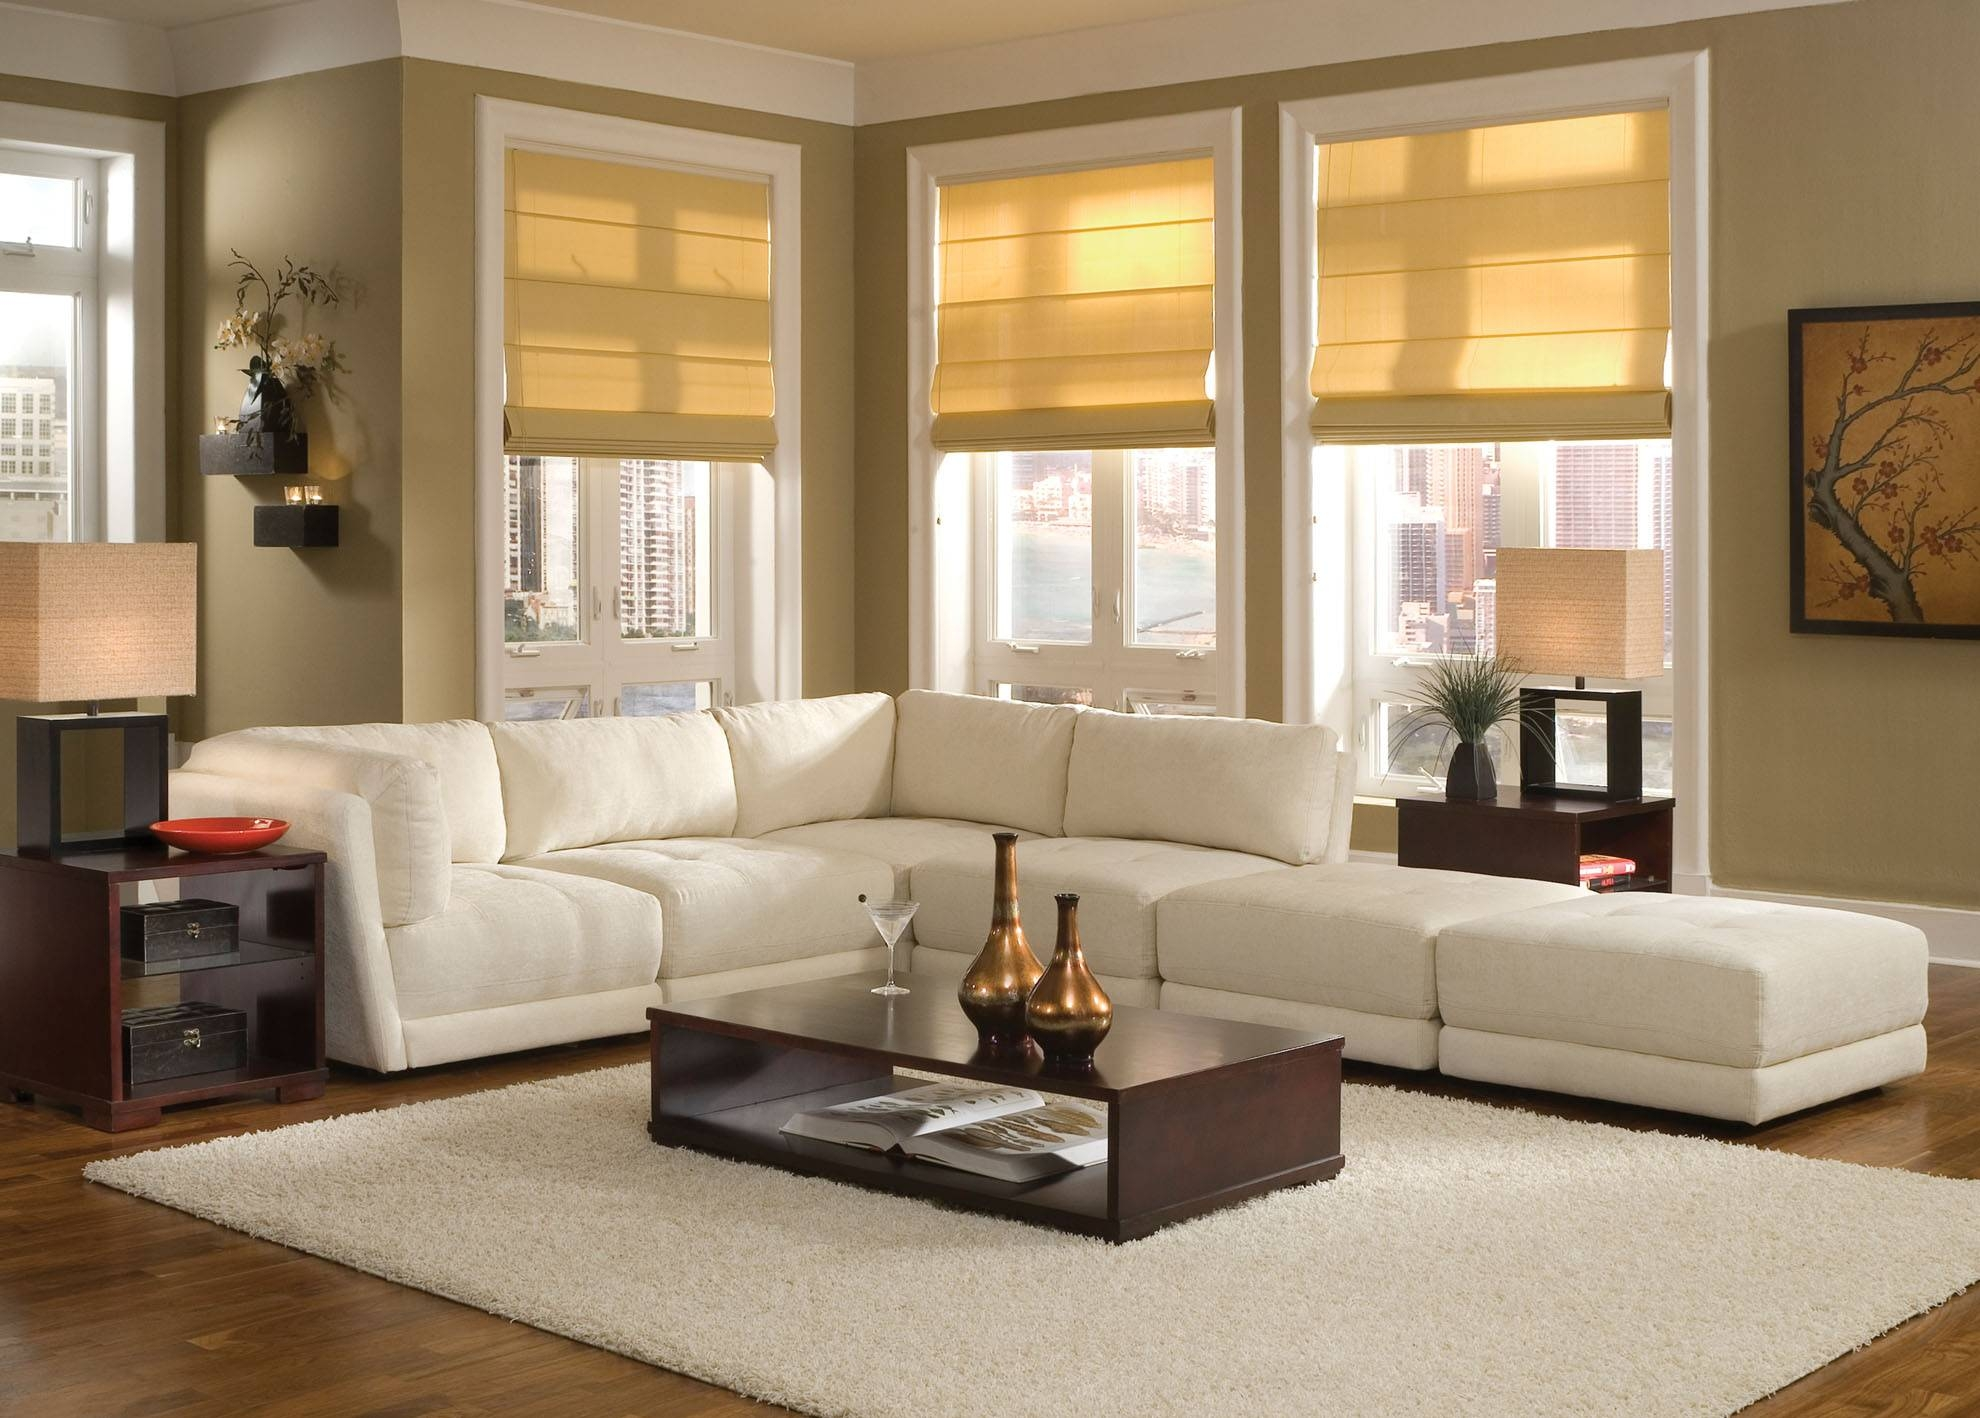 White Sofa Design Ideas & Pictures For Living Room inside Small Lounge Sofas (Image 15 of 15)